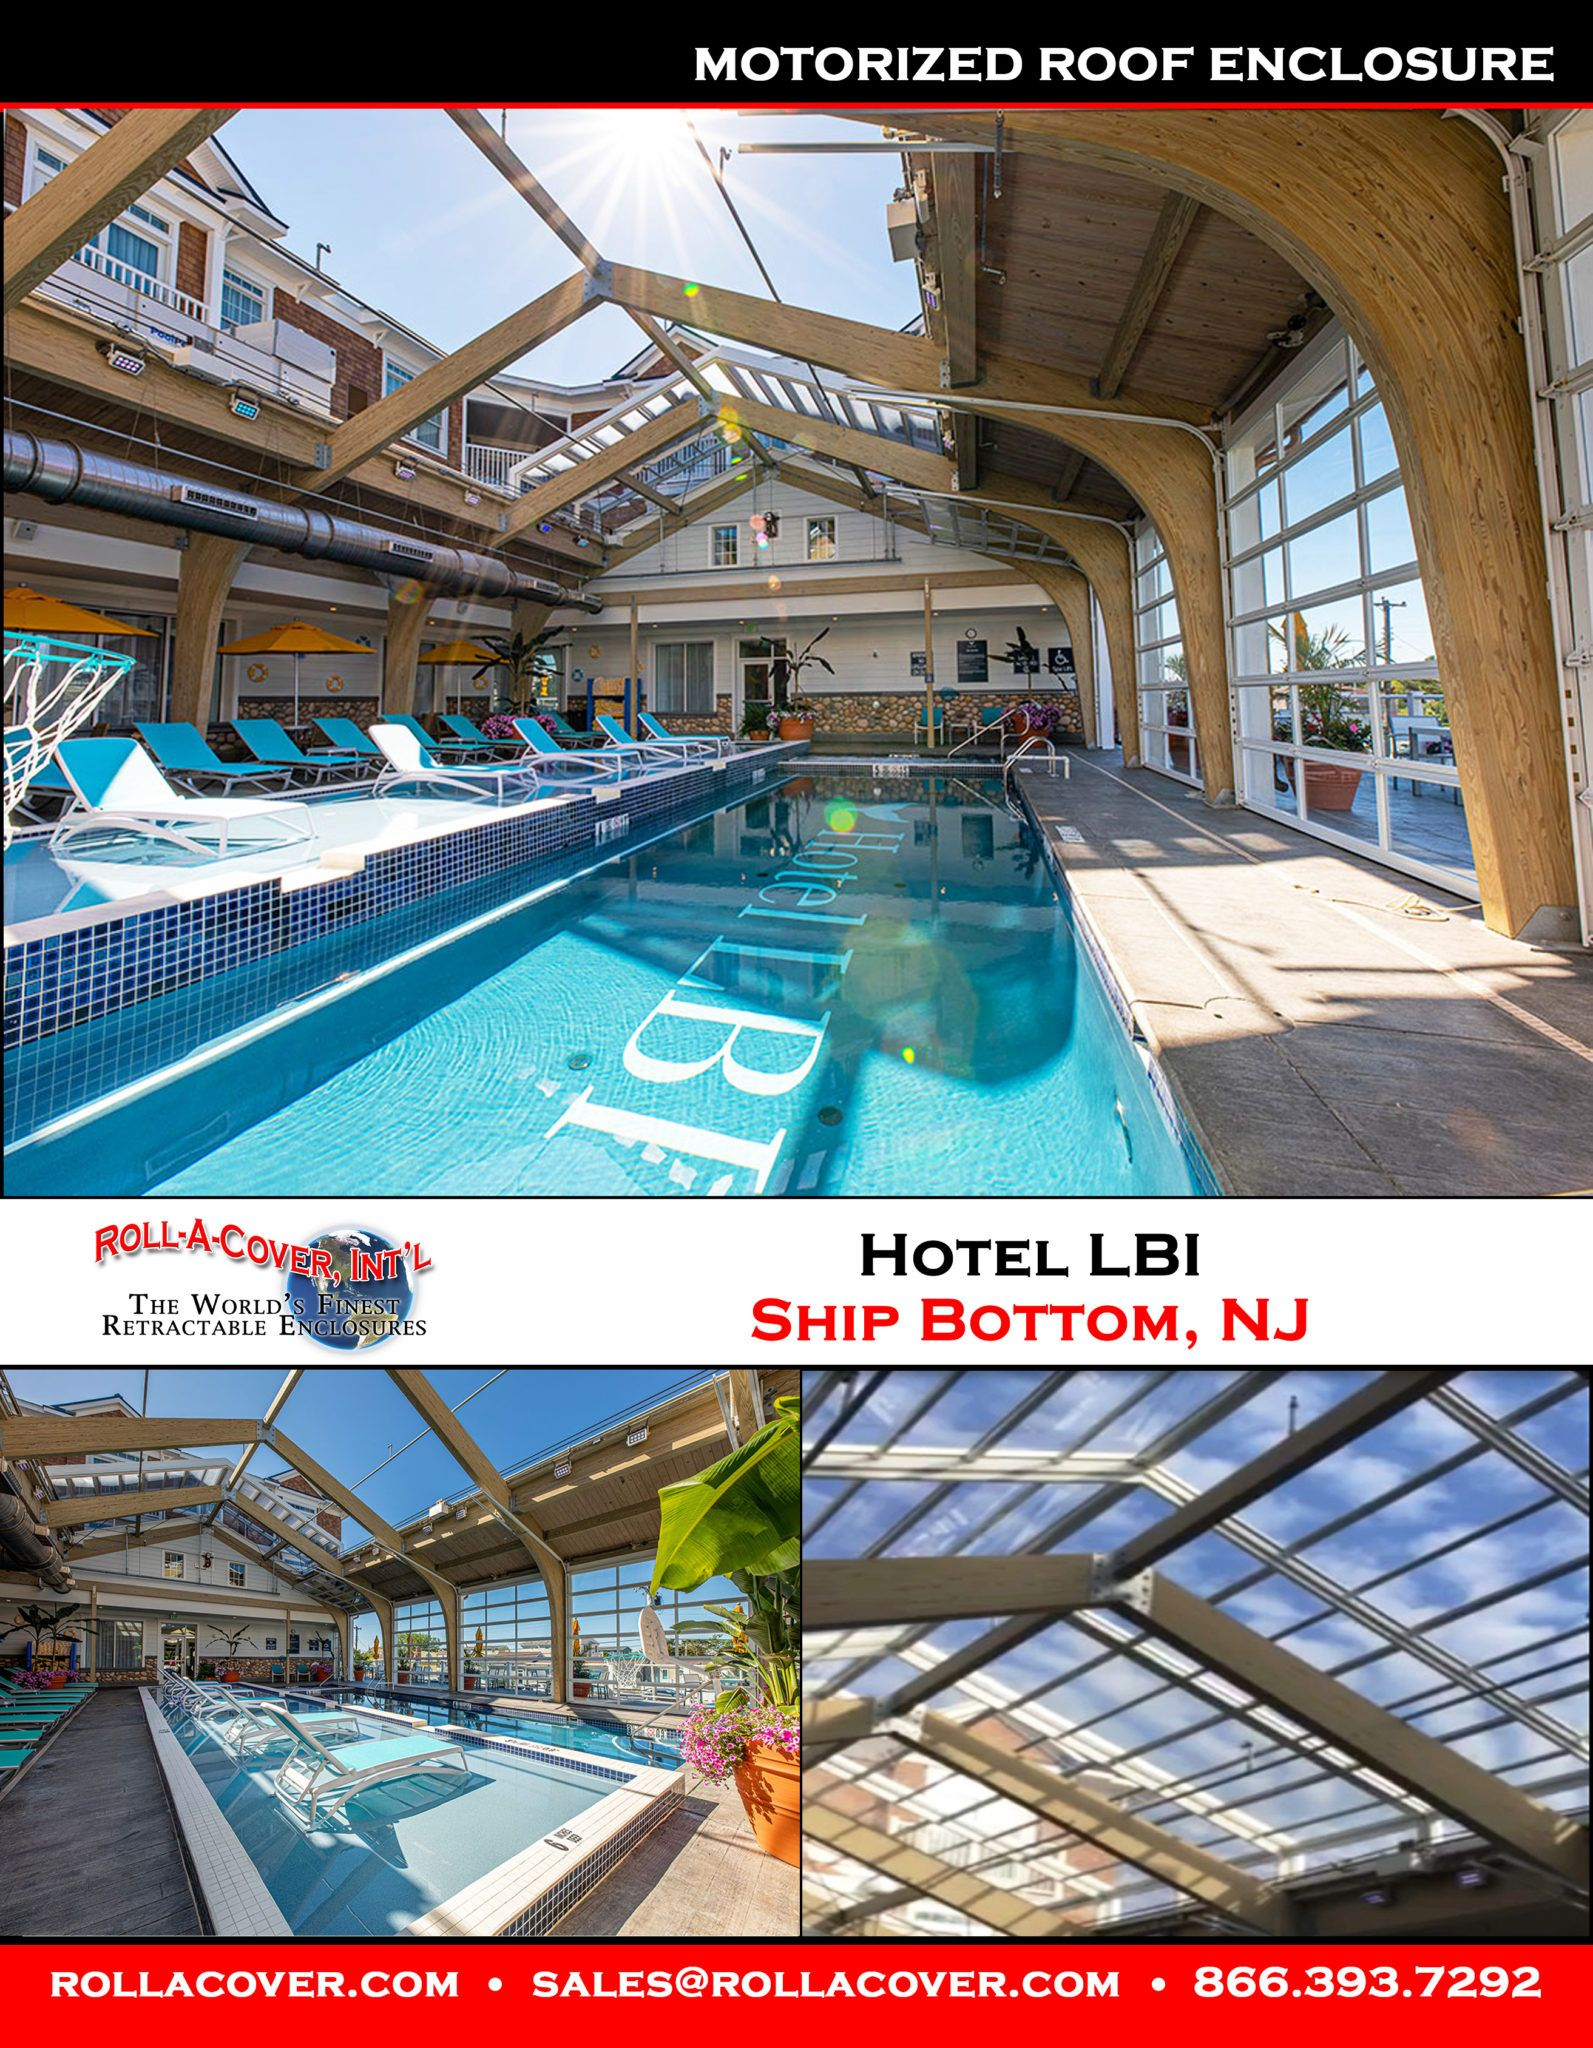 Hotel Lbi Retractable Skylight Manufactured By Roll A Cover With